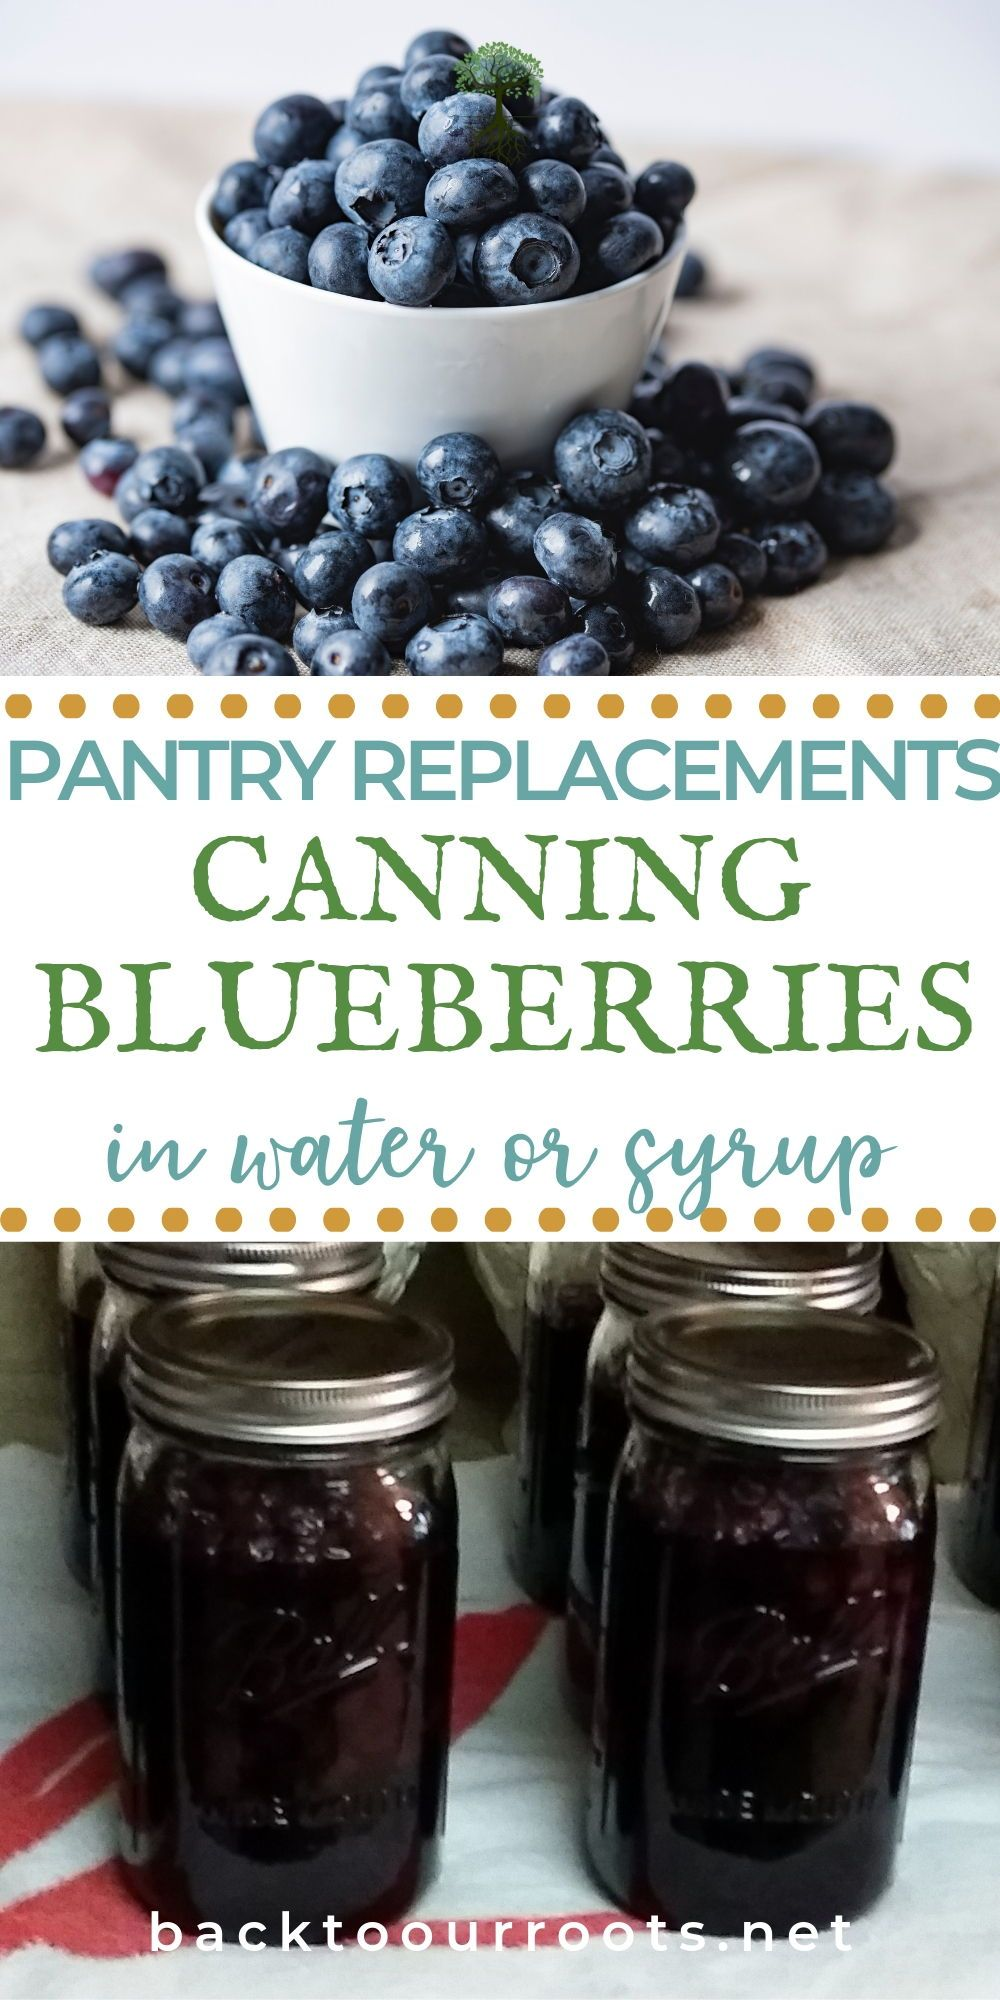 Canning blueberries amazing blueberry goodness in a jar